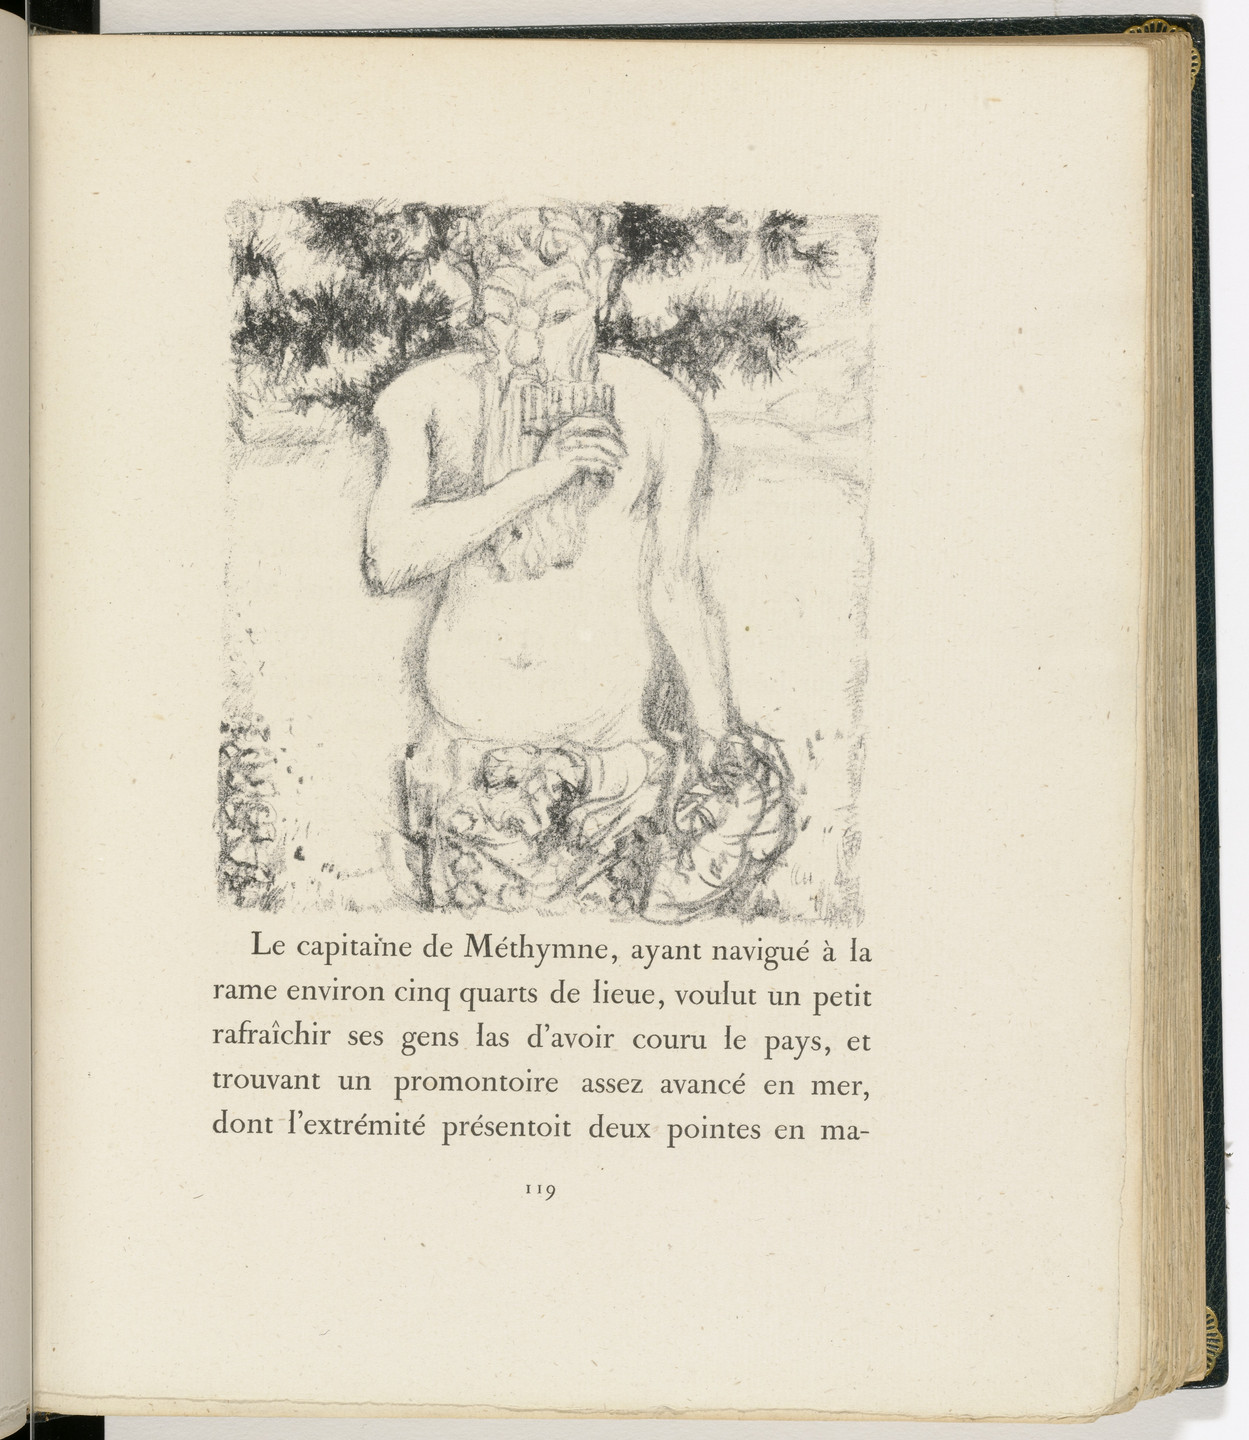 Pierre Bonnard. In-text plate (page 119) from Daphnis et Chloé. 1902